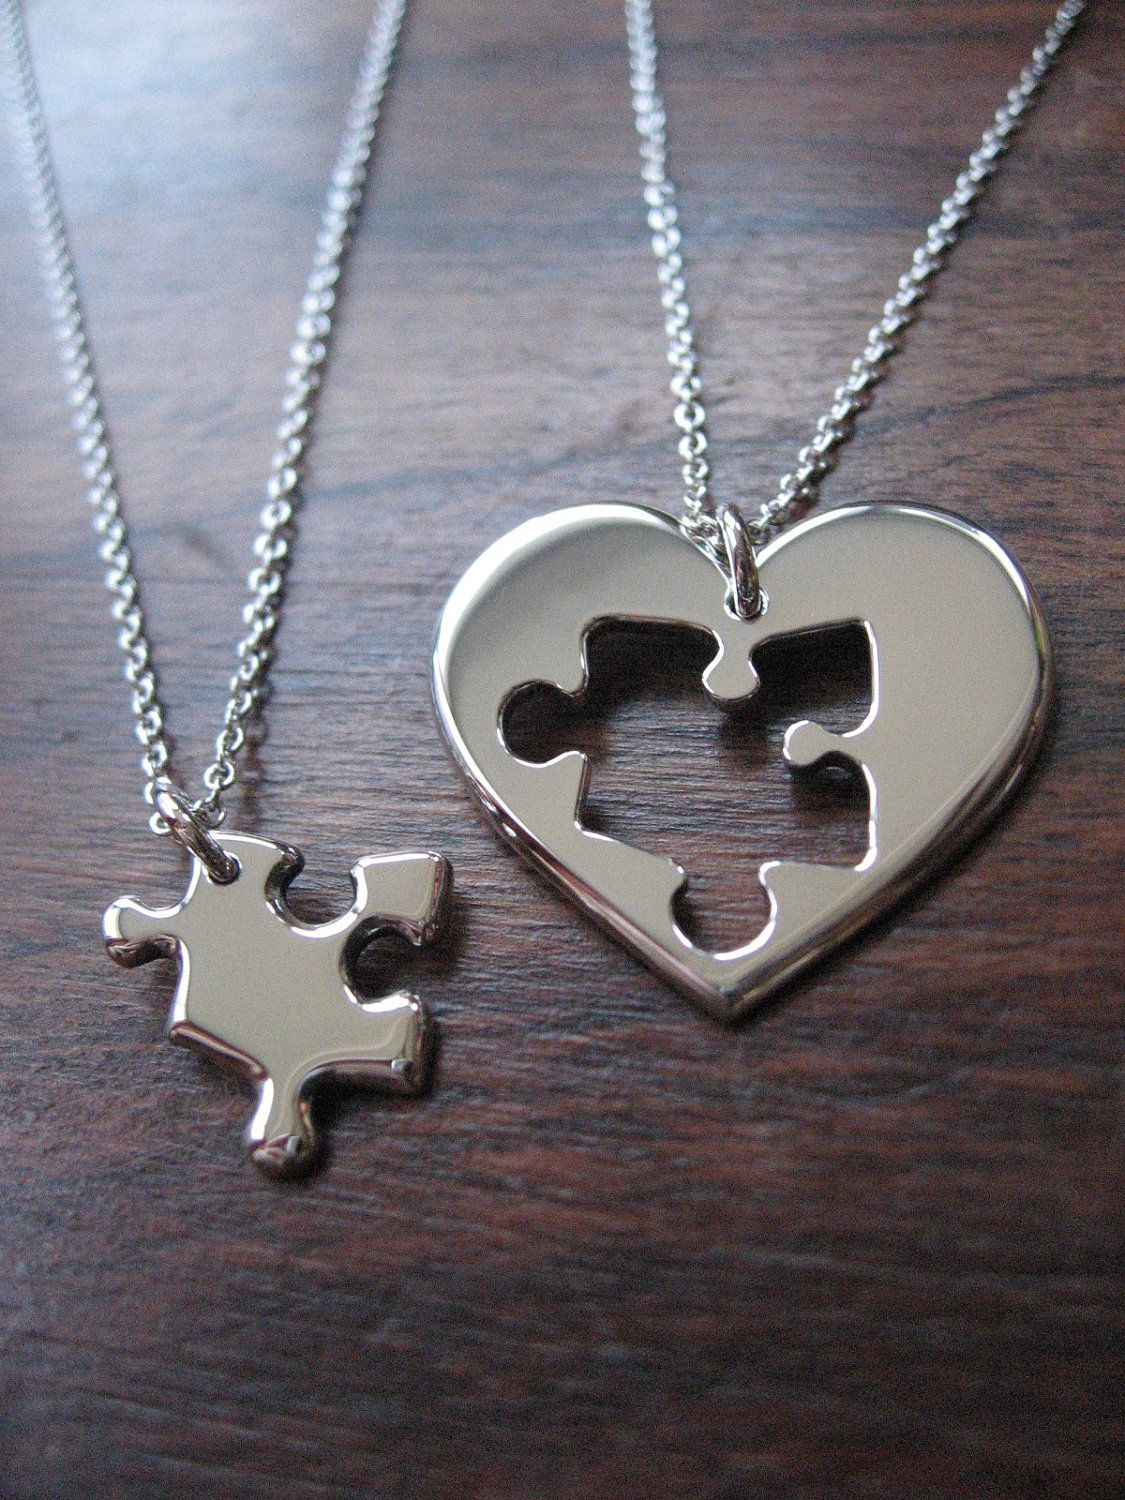 Best friend puzzle and heart necklace pendants 7500 via etsy best friend puzzle and heart necklace pendants cute but i would make the puzzle piece a keychain so my bf could carry it mozeypictures Image collections